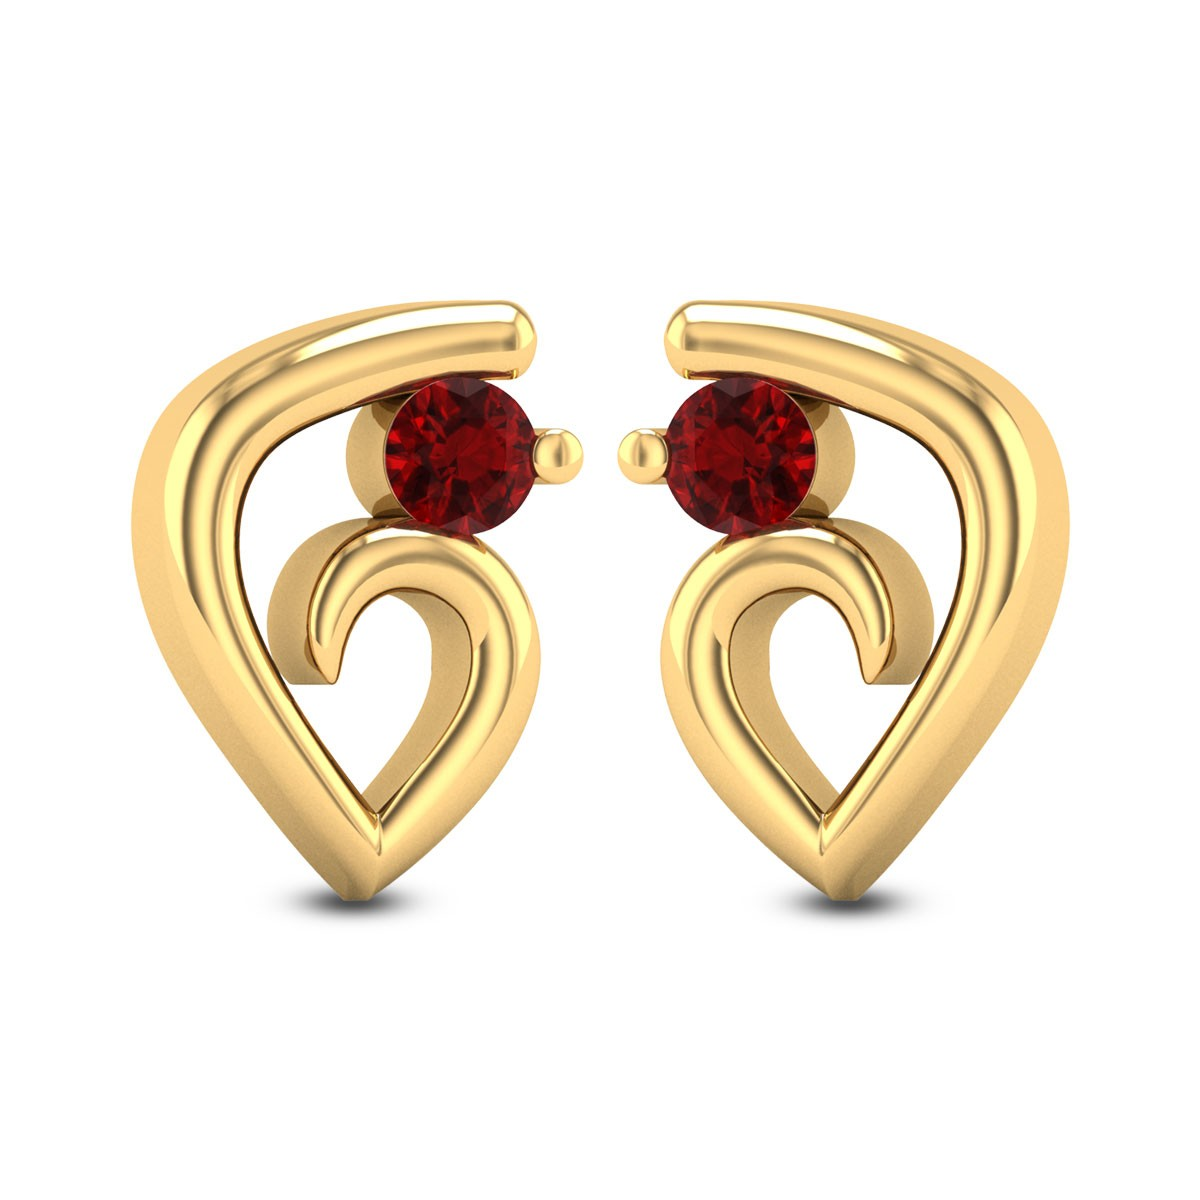 Penguin Ruby Stud Earrings